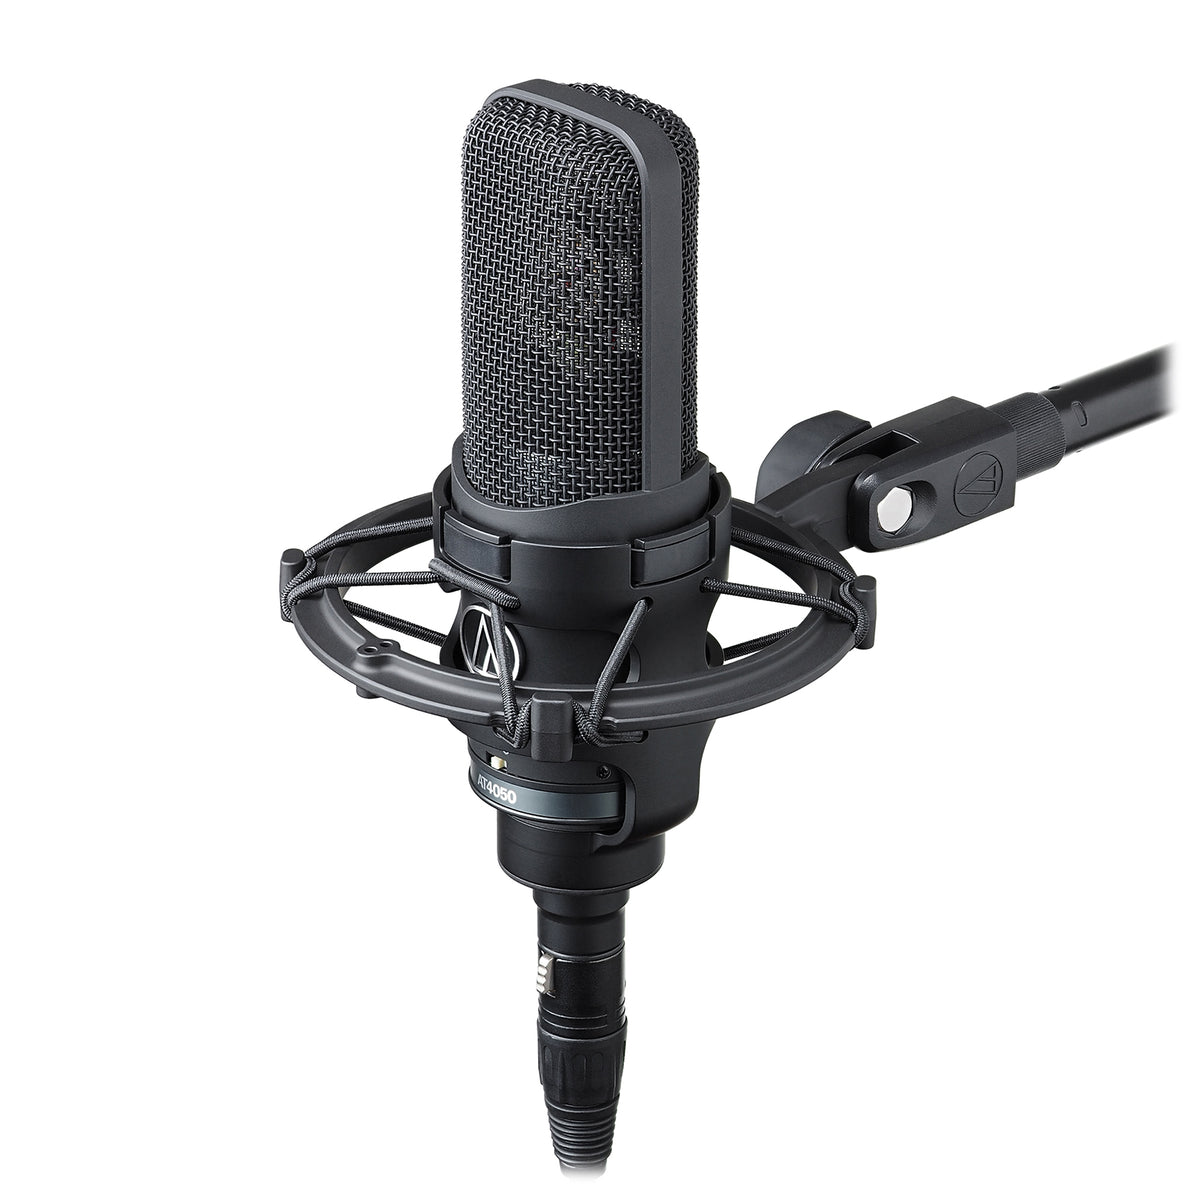 Audio-Technica: AT4050 Multi-pattern Condenser Microphone